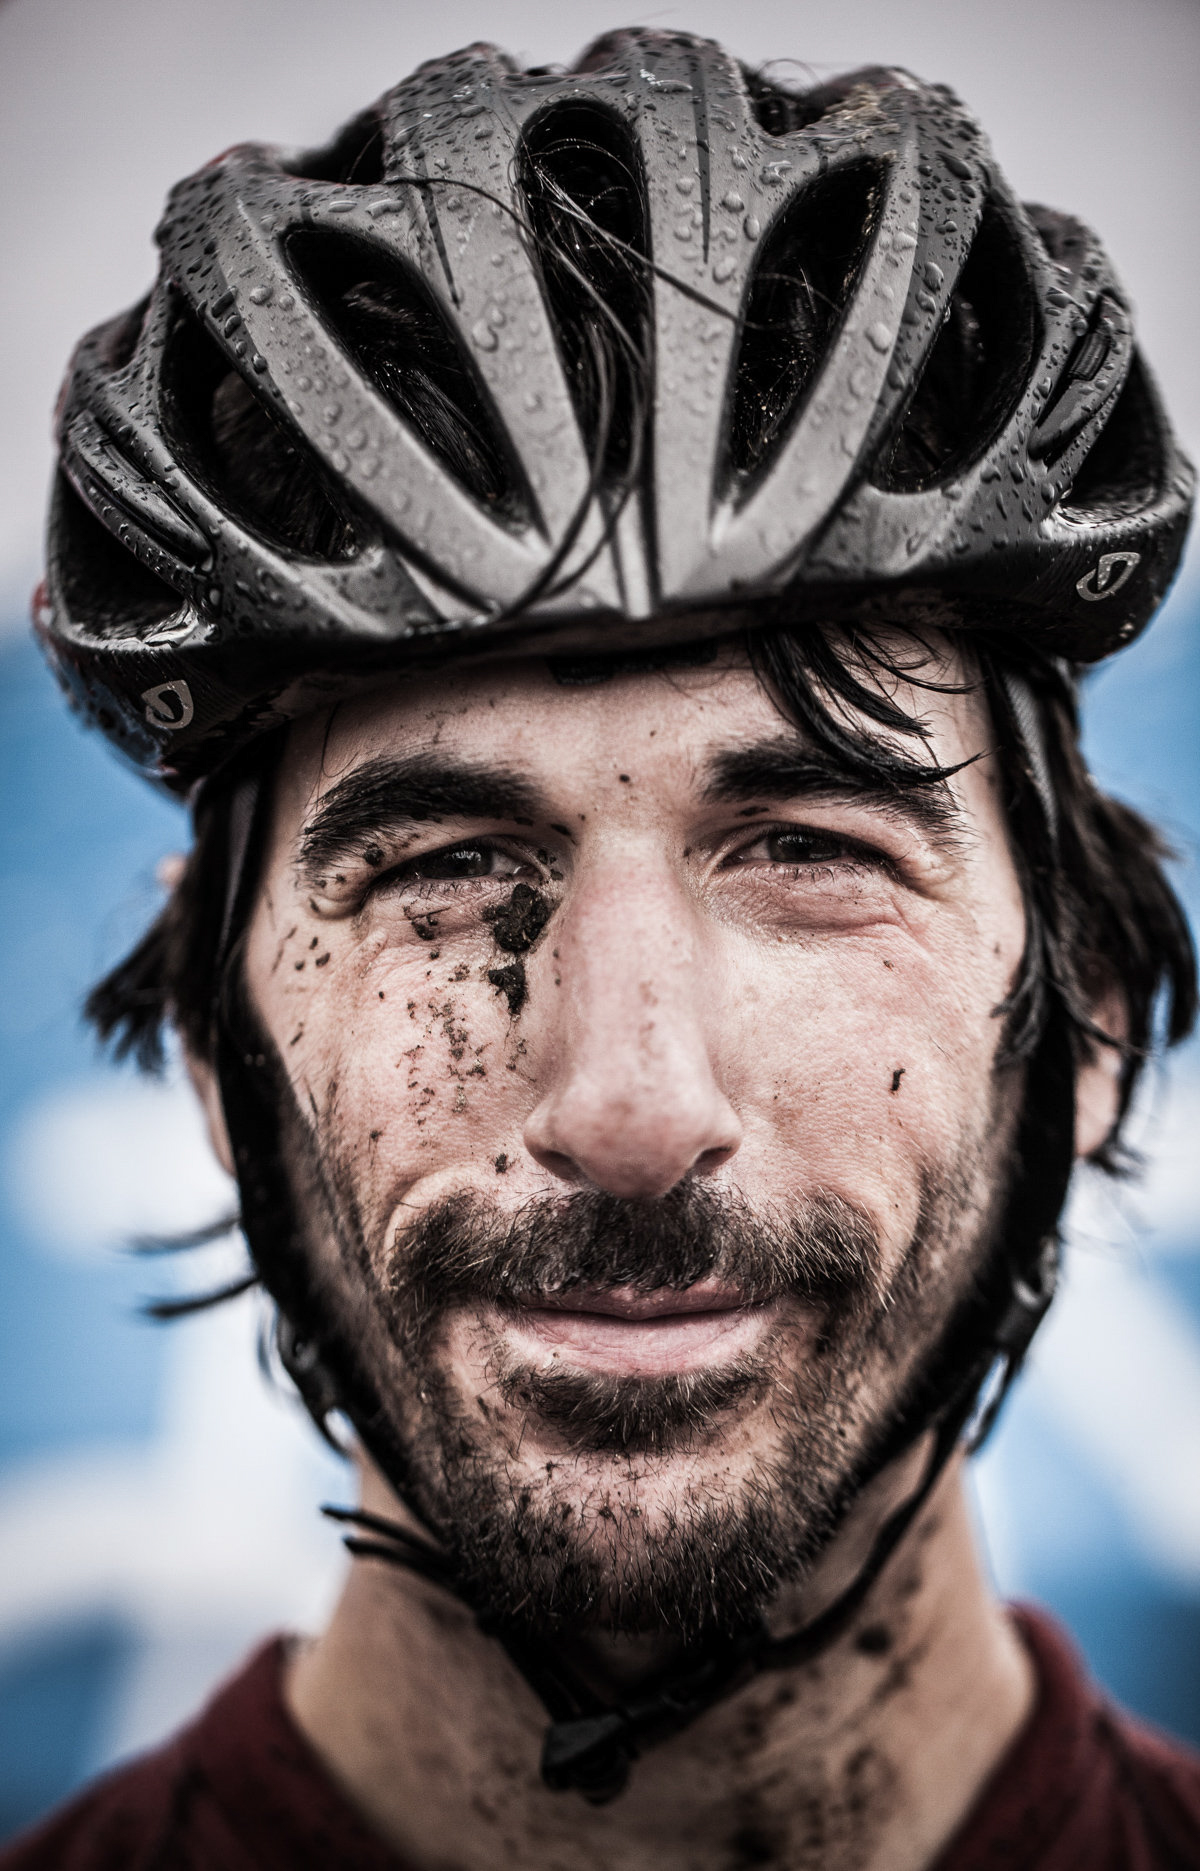 Muddy Face Portrait - Athlete